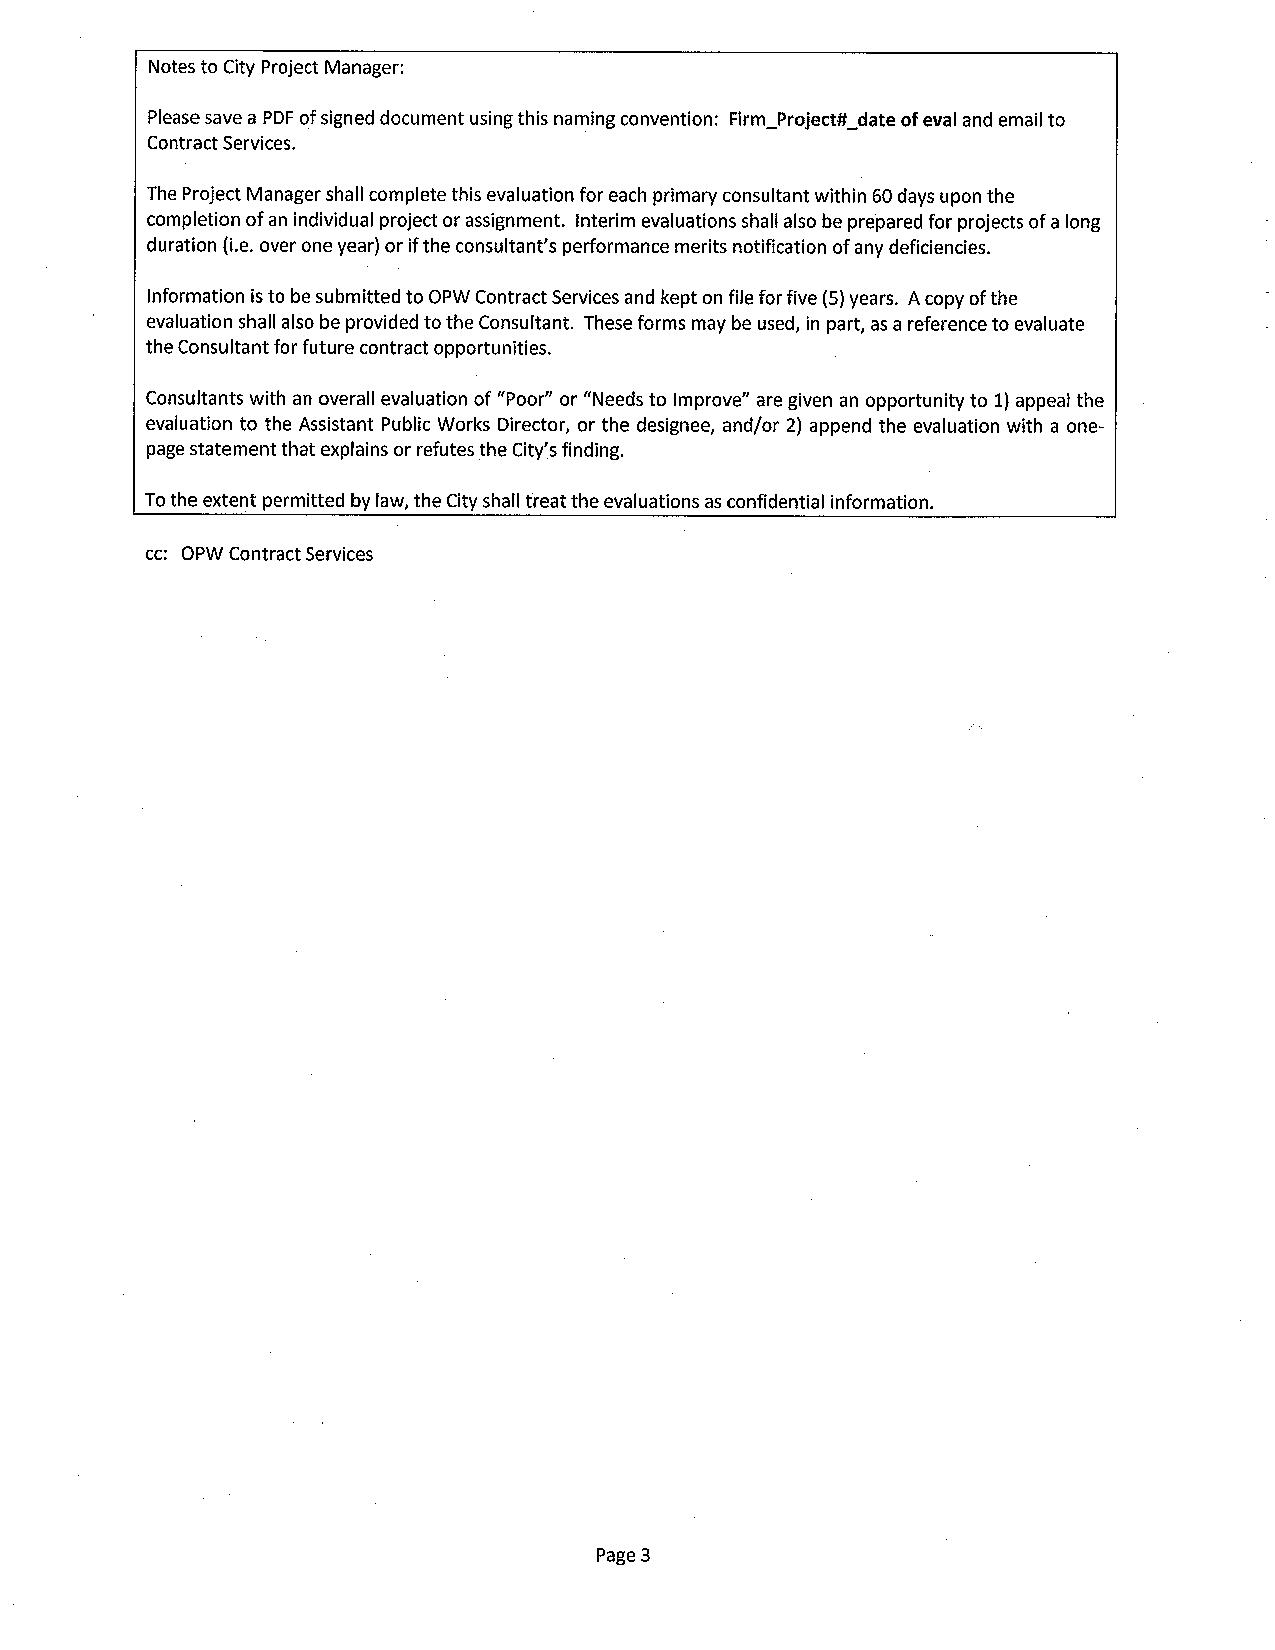 City of Oakland Evaluation and Letter-page-003